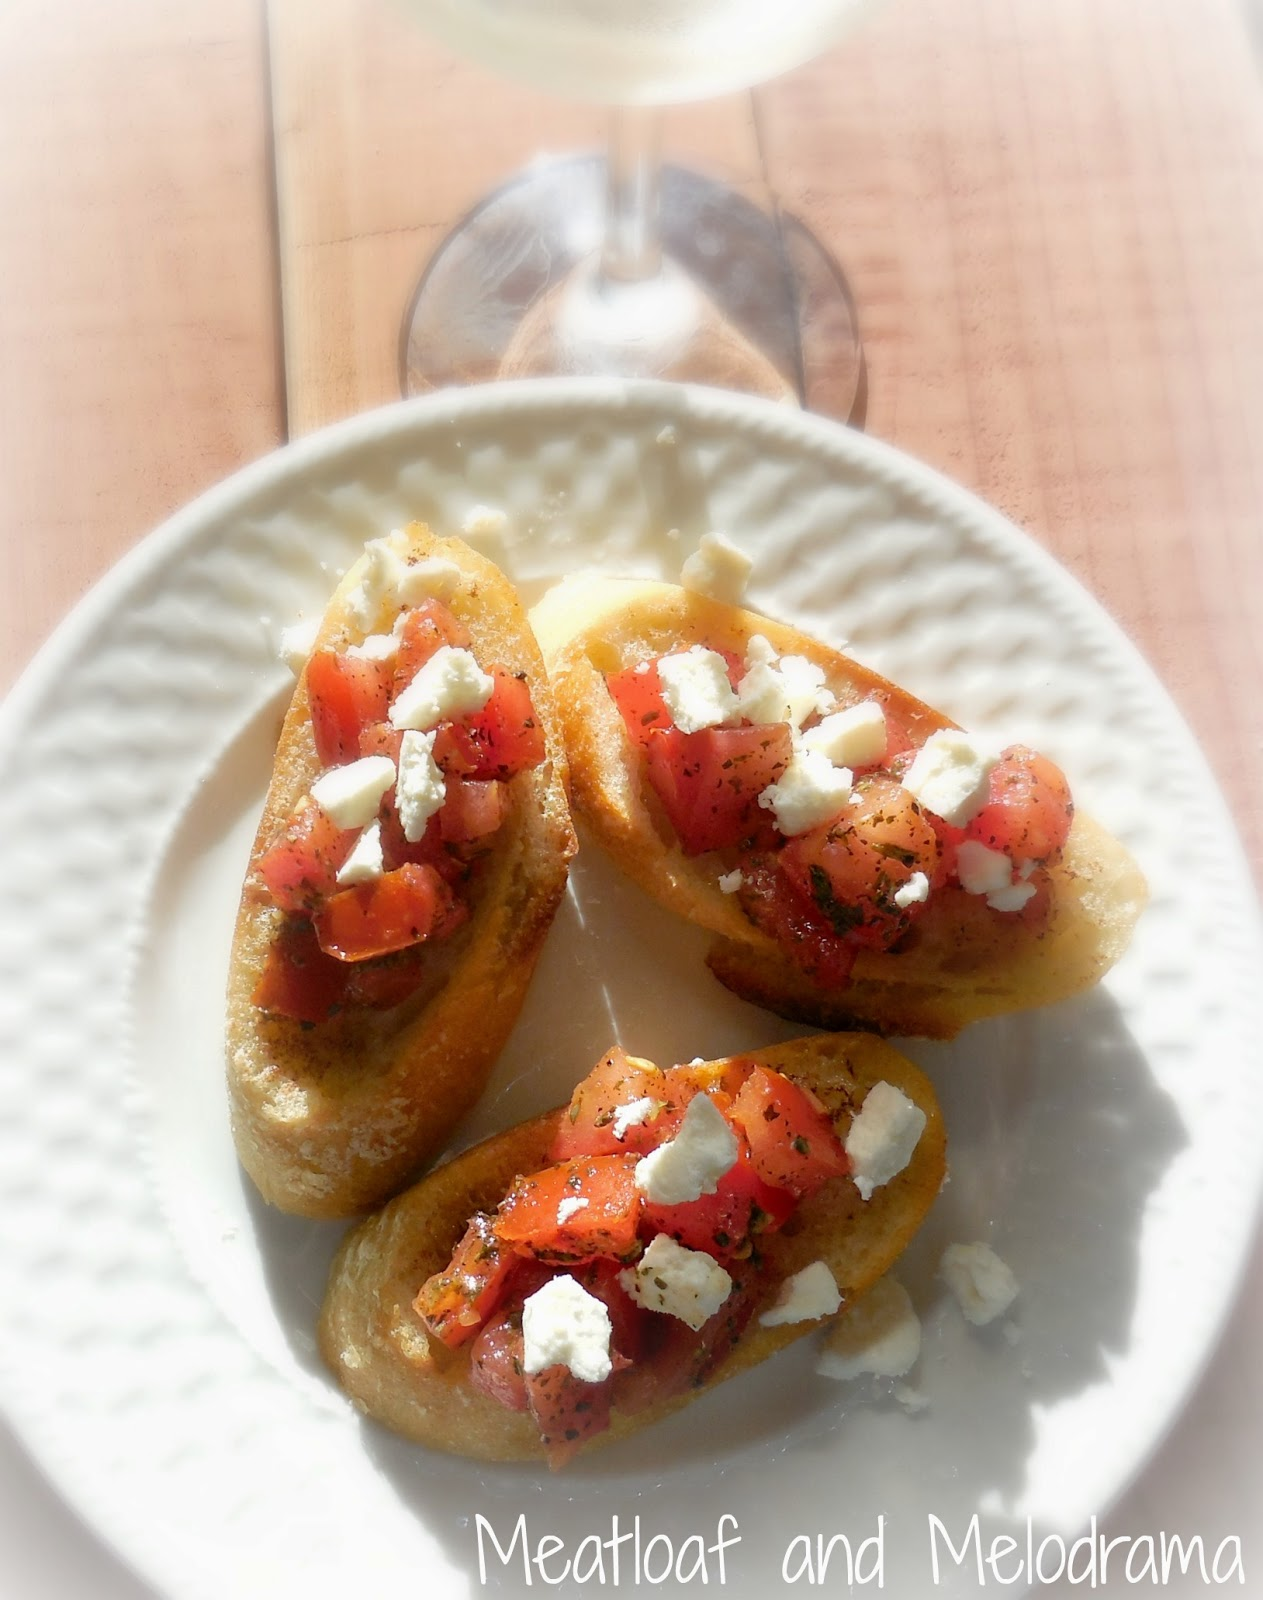 tomato bruschetta and feta cheese on a plate with wine